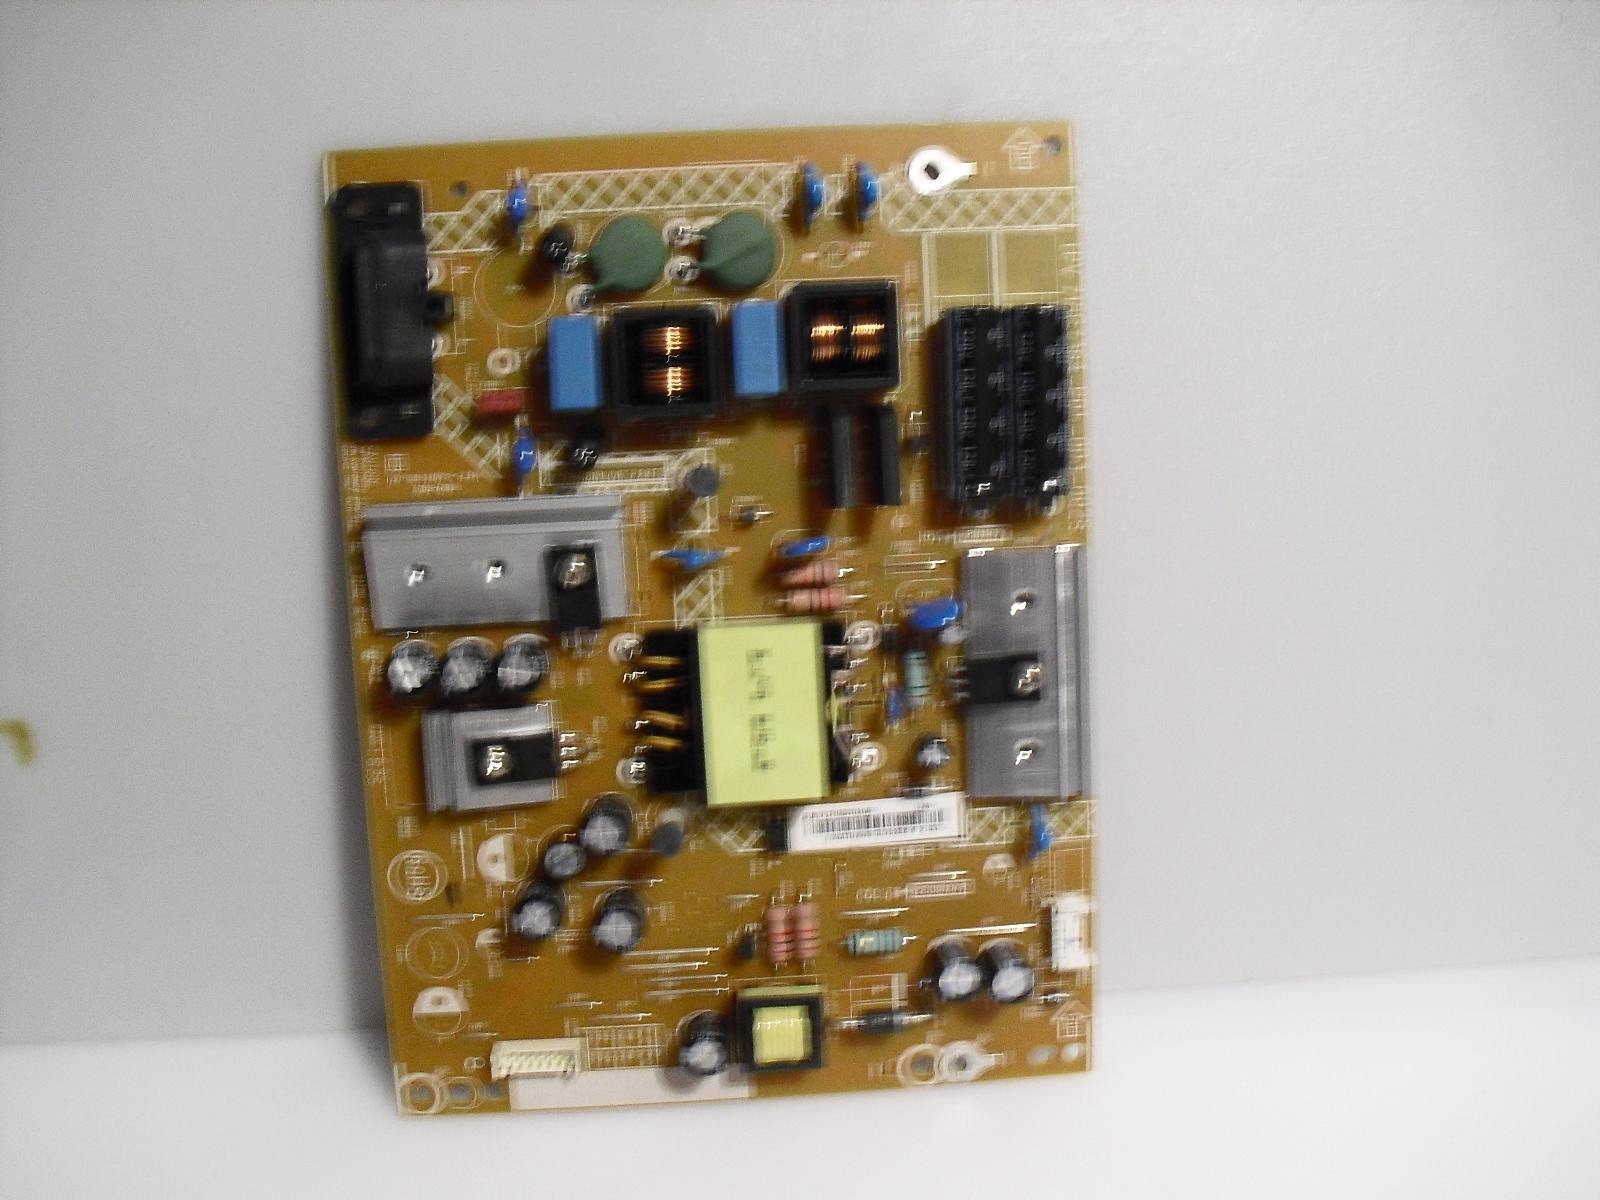 Primary image for 715g7364-p01-003-002s   power   board  for  insignia   ns-39dr510na17